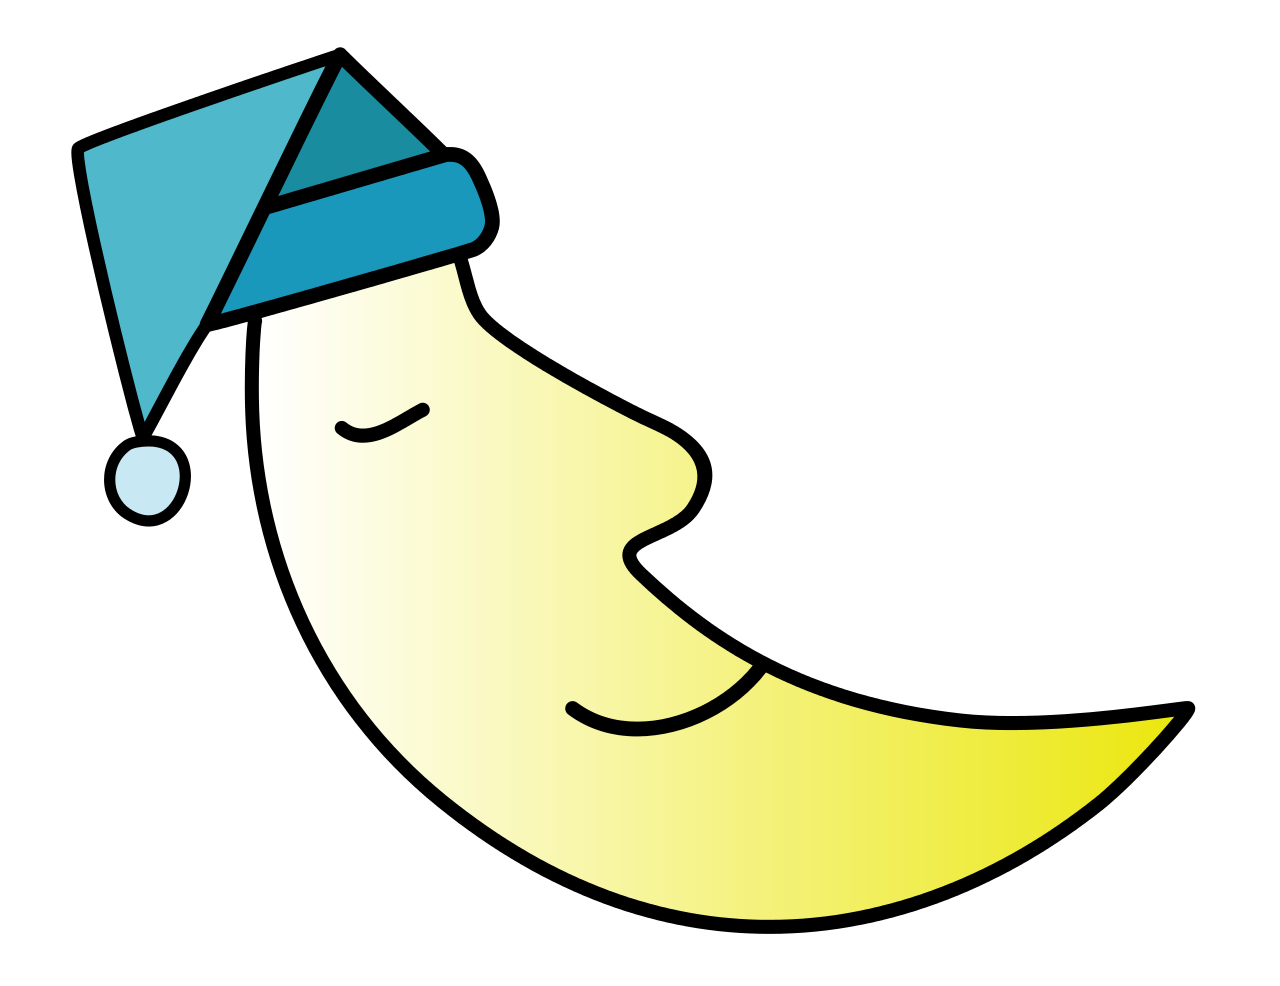 svg black and white library Nap clipart bedtime. Quantity quality and lack.